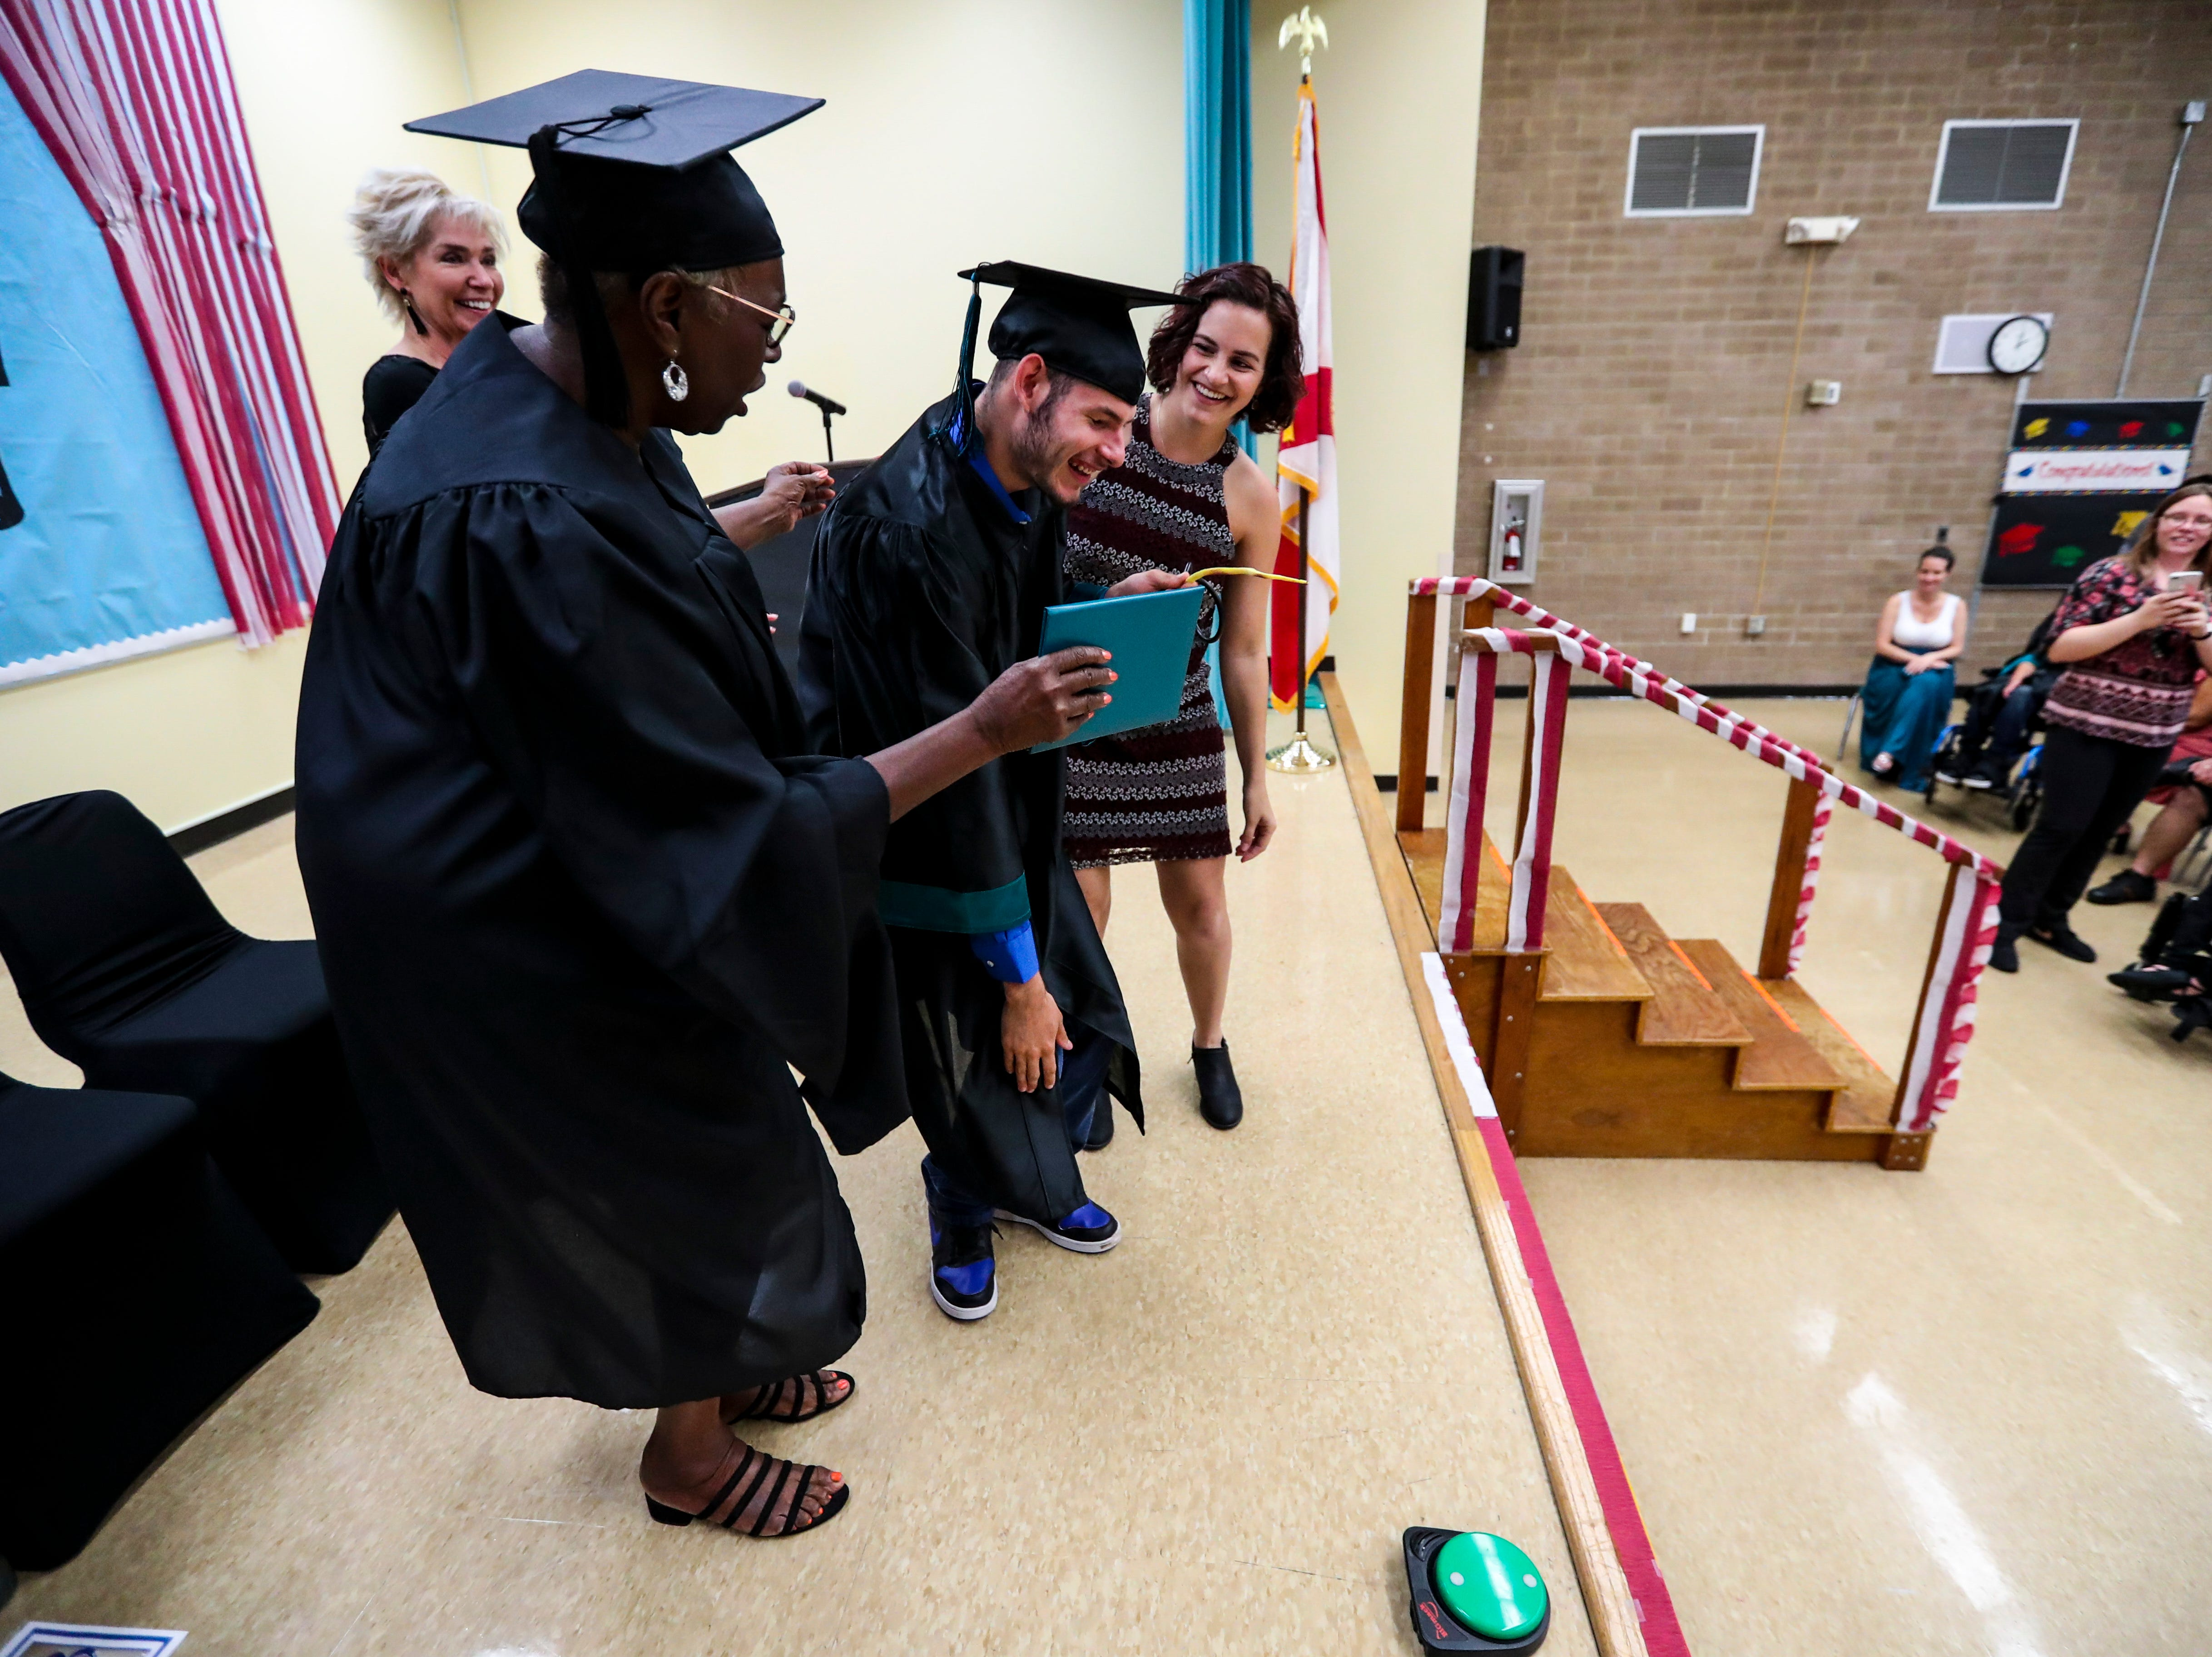 13 students at Buckingham Exceptional Student Center graduated during a ceremony in their honor. Family, friends, and staff were there to honor the graduates.